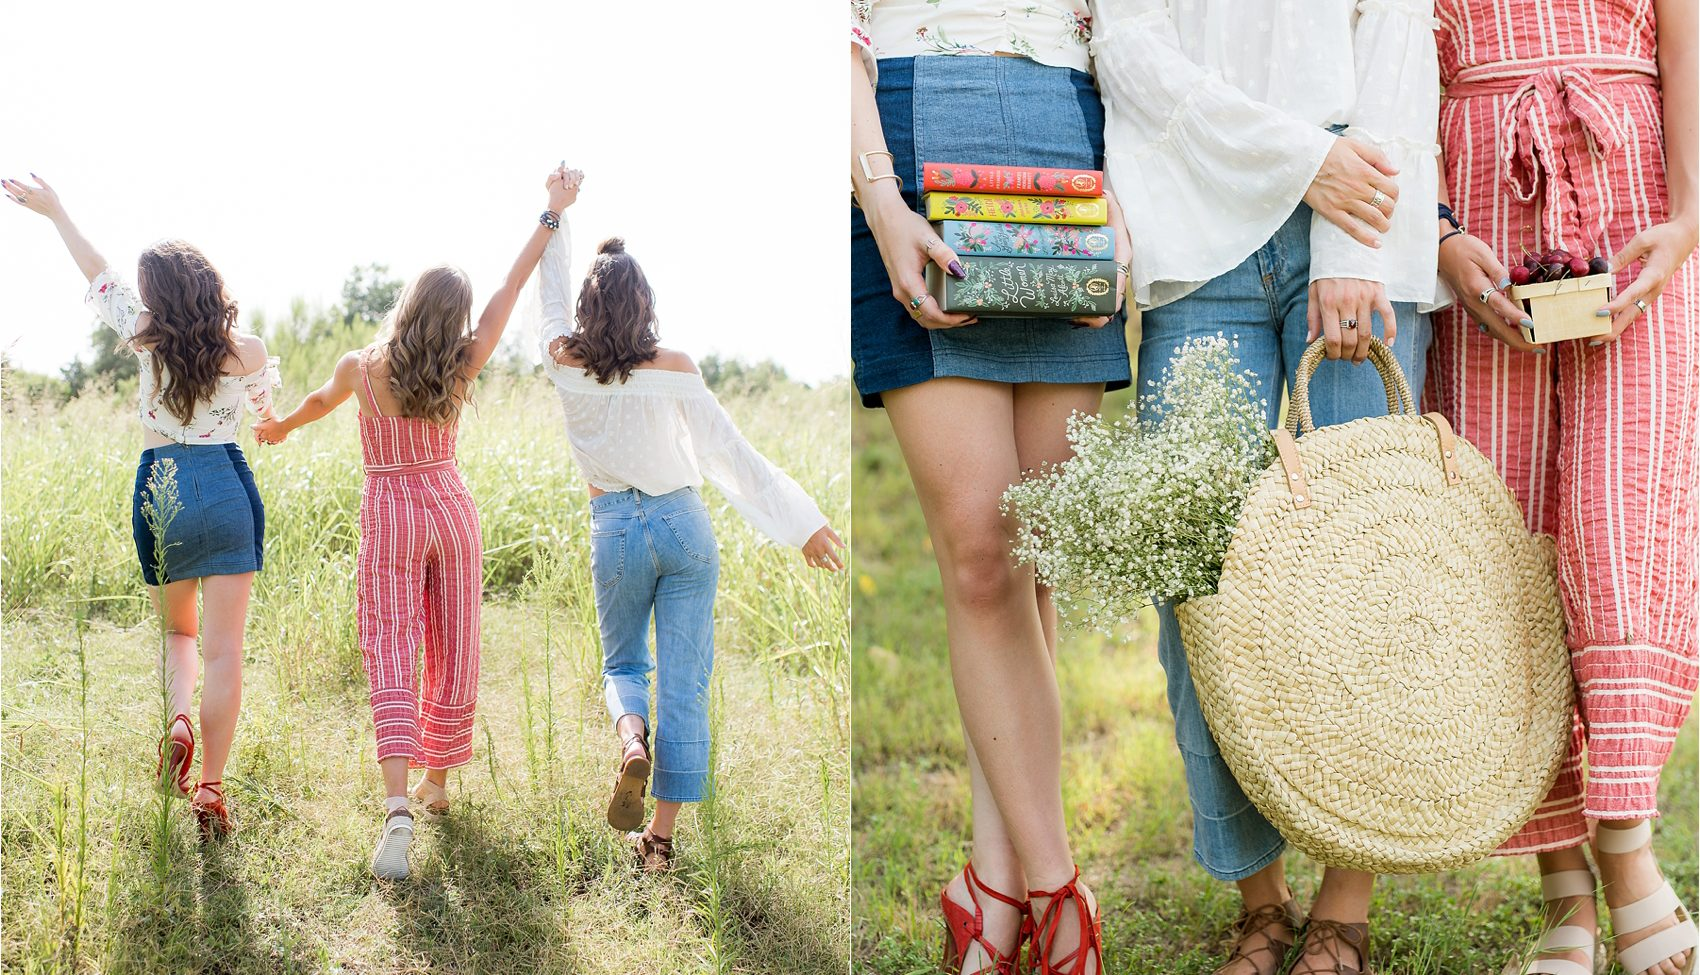 Anthropologie Summer Picnic  |  Plano, TX Senior Photography